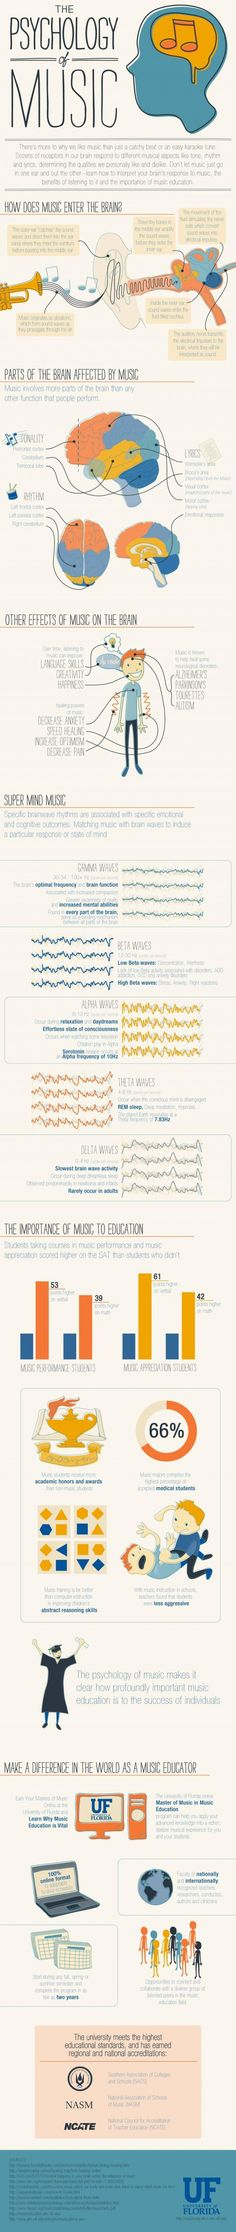 The Psychology of Music